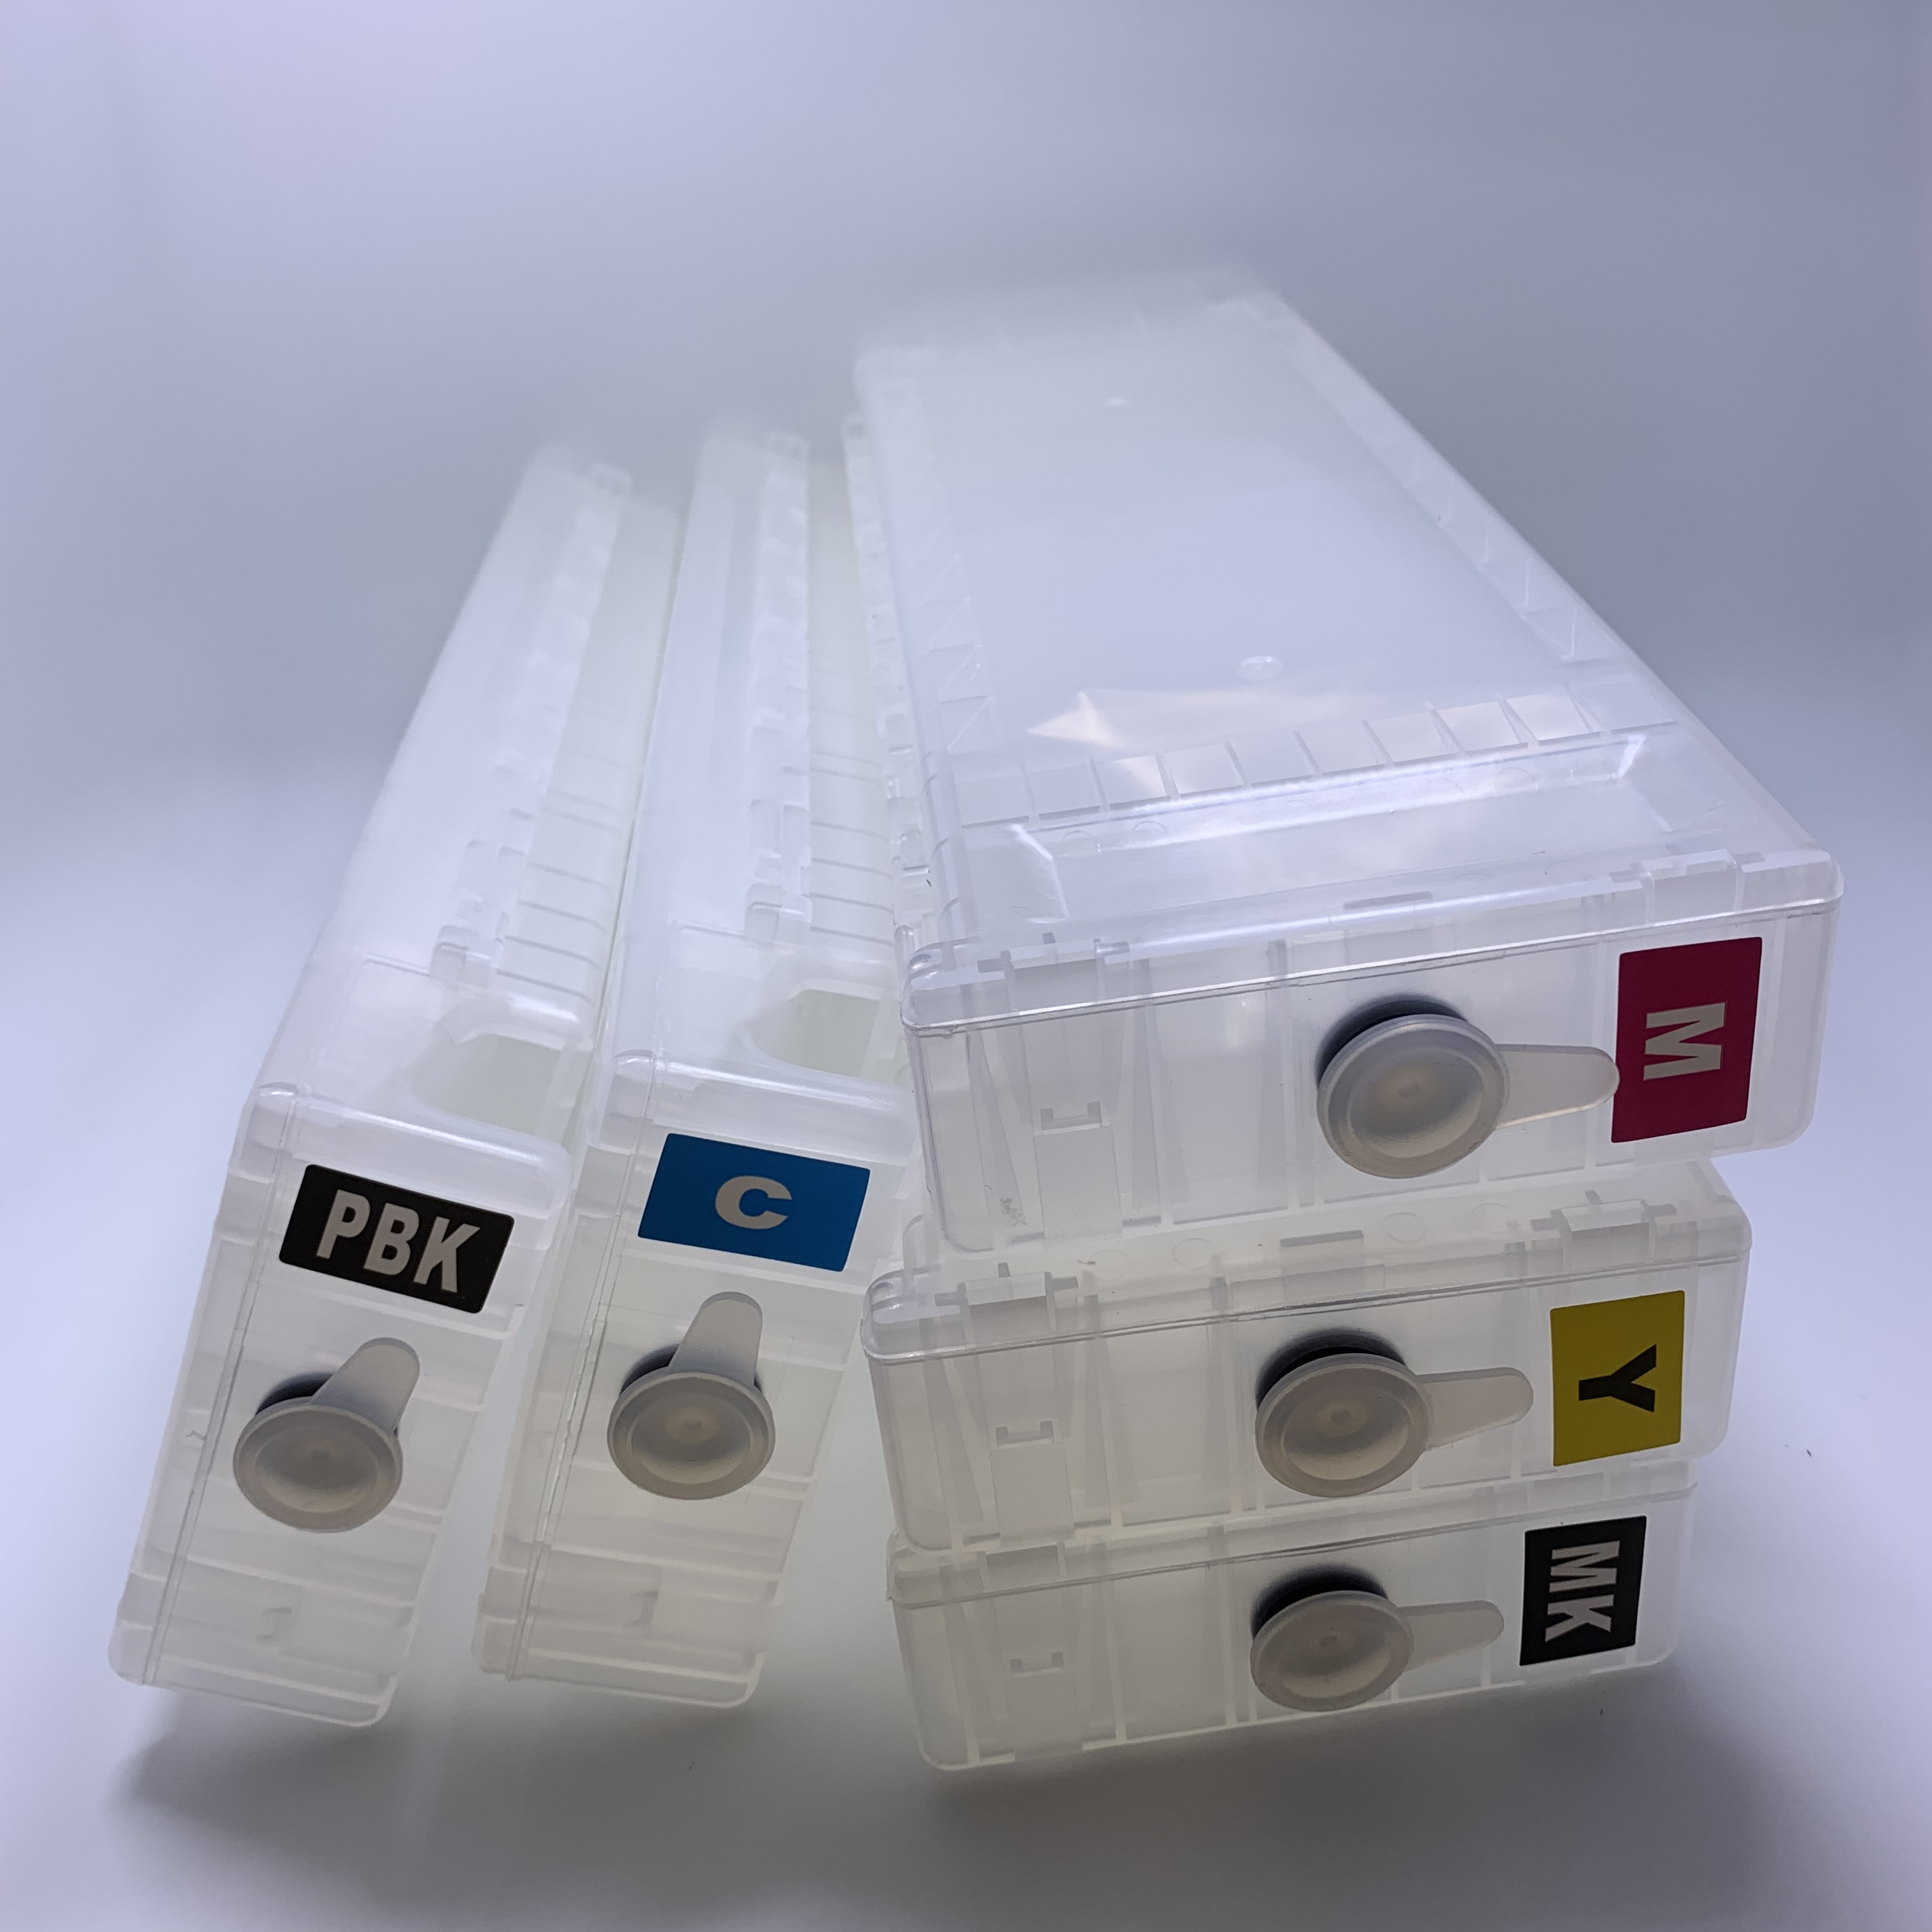 Image 3 - YOTAT 5pcs T6941 for Epson SureColor T7200 T5200 T3200 empty refillable ink cartridge T6941 T6942 T6943 T6944 T6945-in Ink Cartridges from Computer & Office